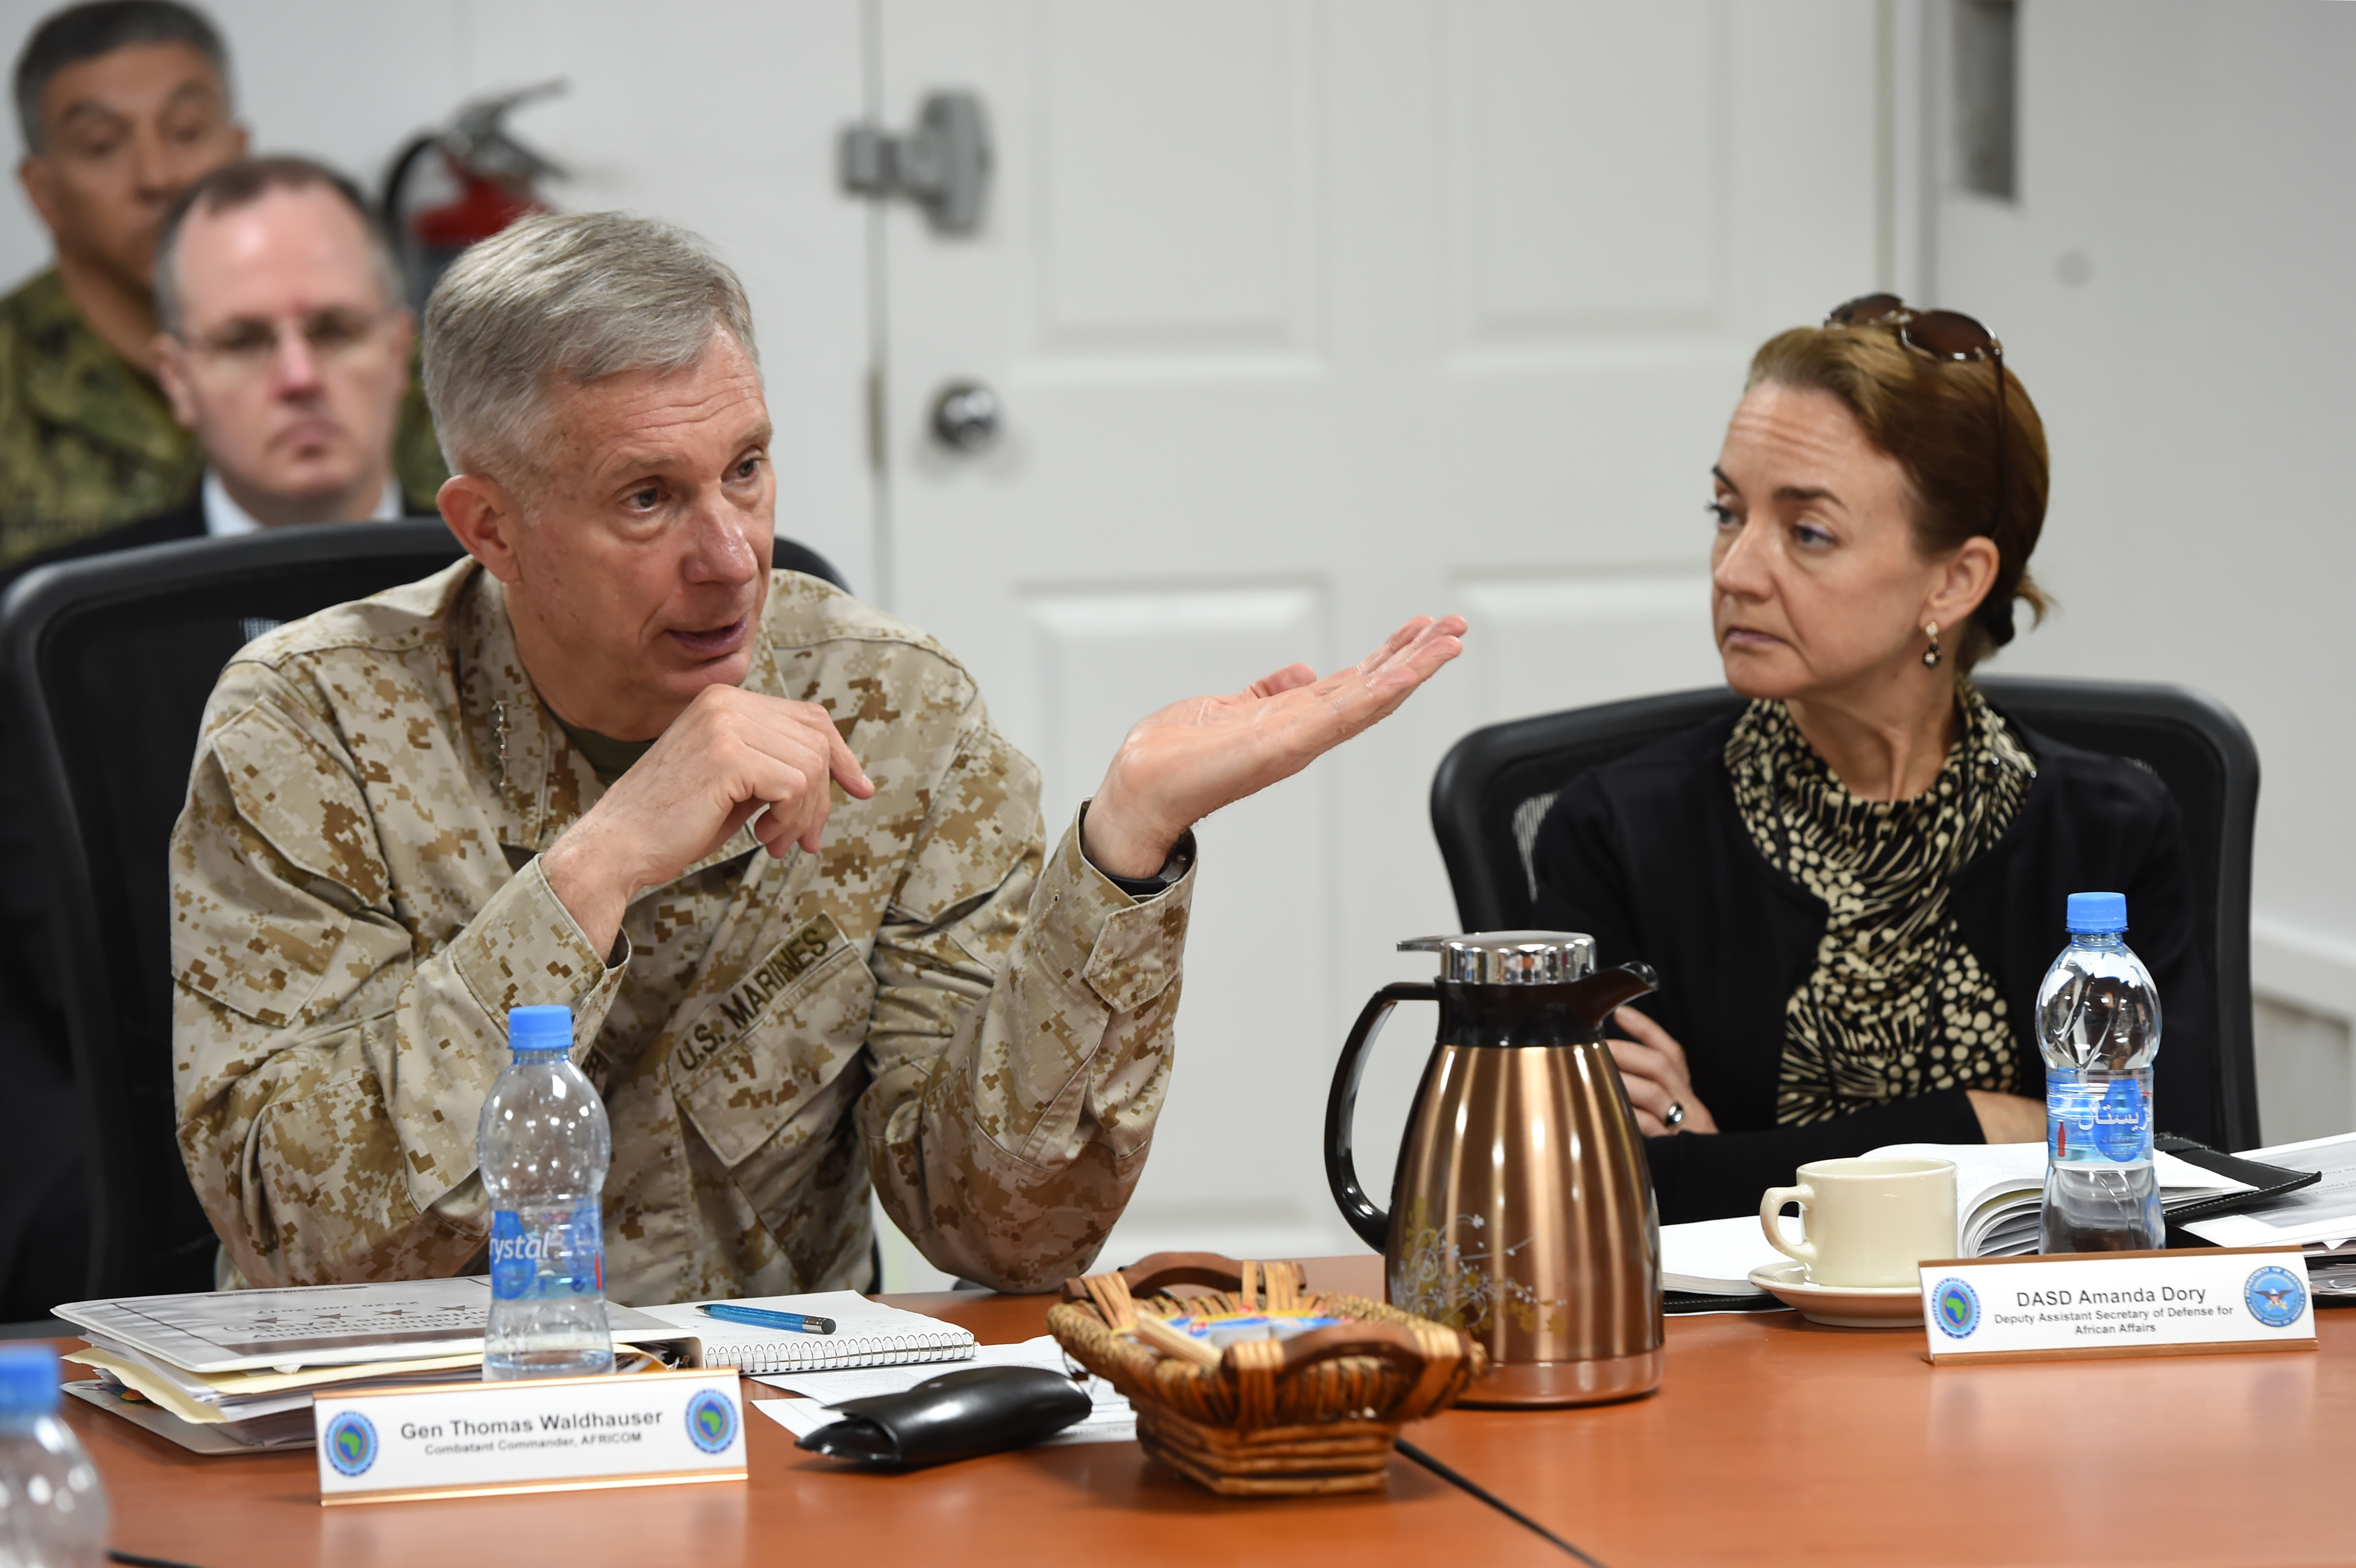 Gen. Thomas Waldhauser, commander of U.S. Africa Command, addresses attendees of the 2017 East Africa Security Synchronization Conference at Camp Lemonnier, Djibouti, Jan. 24. The two-day event allowed U.S. Embassy representatives from eight East African nations to engage with AFRICOM leadership, and provided the opportunity for an open dialogue to discuss the security environments of each country. (U.S. Air National Guard photo by Master Sgt. Paul Gorman)